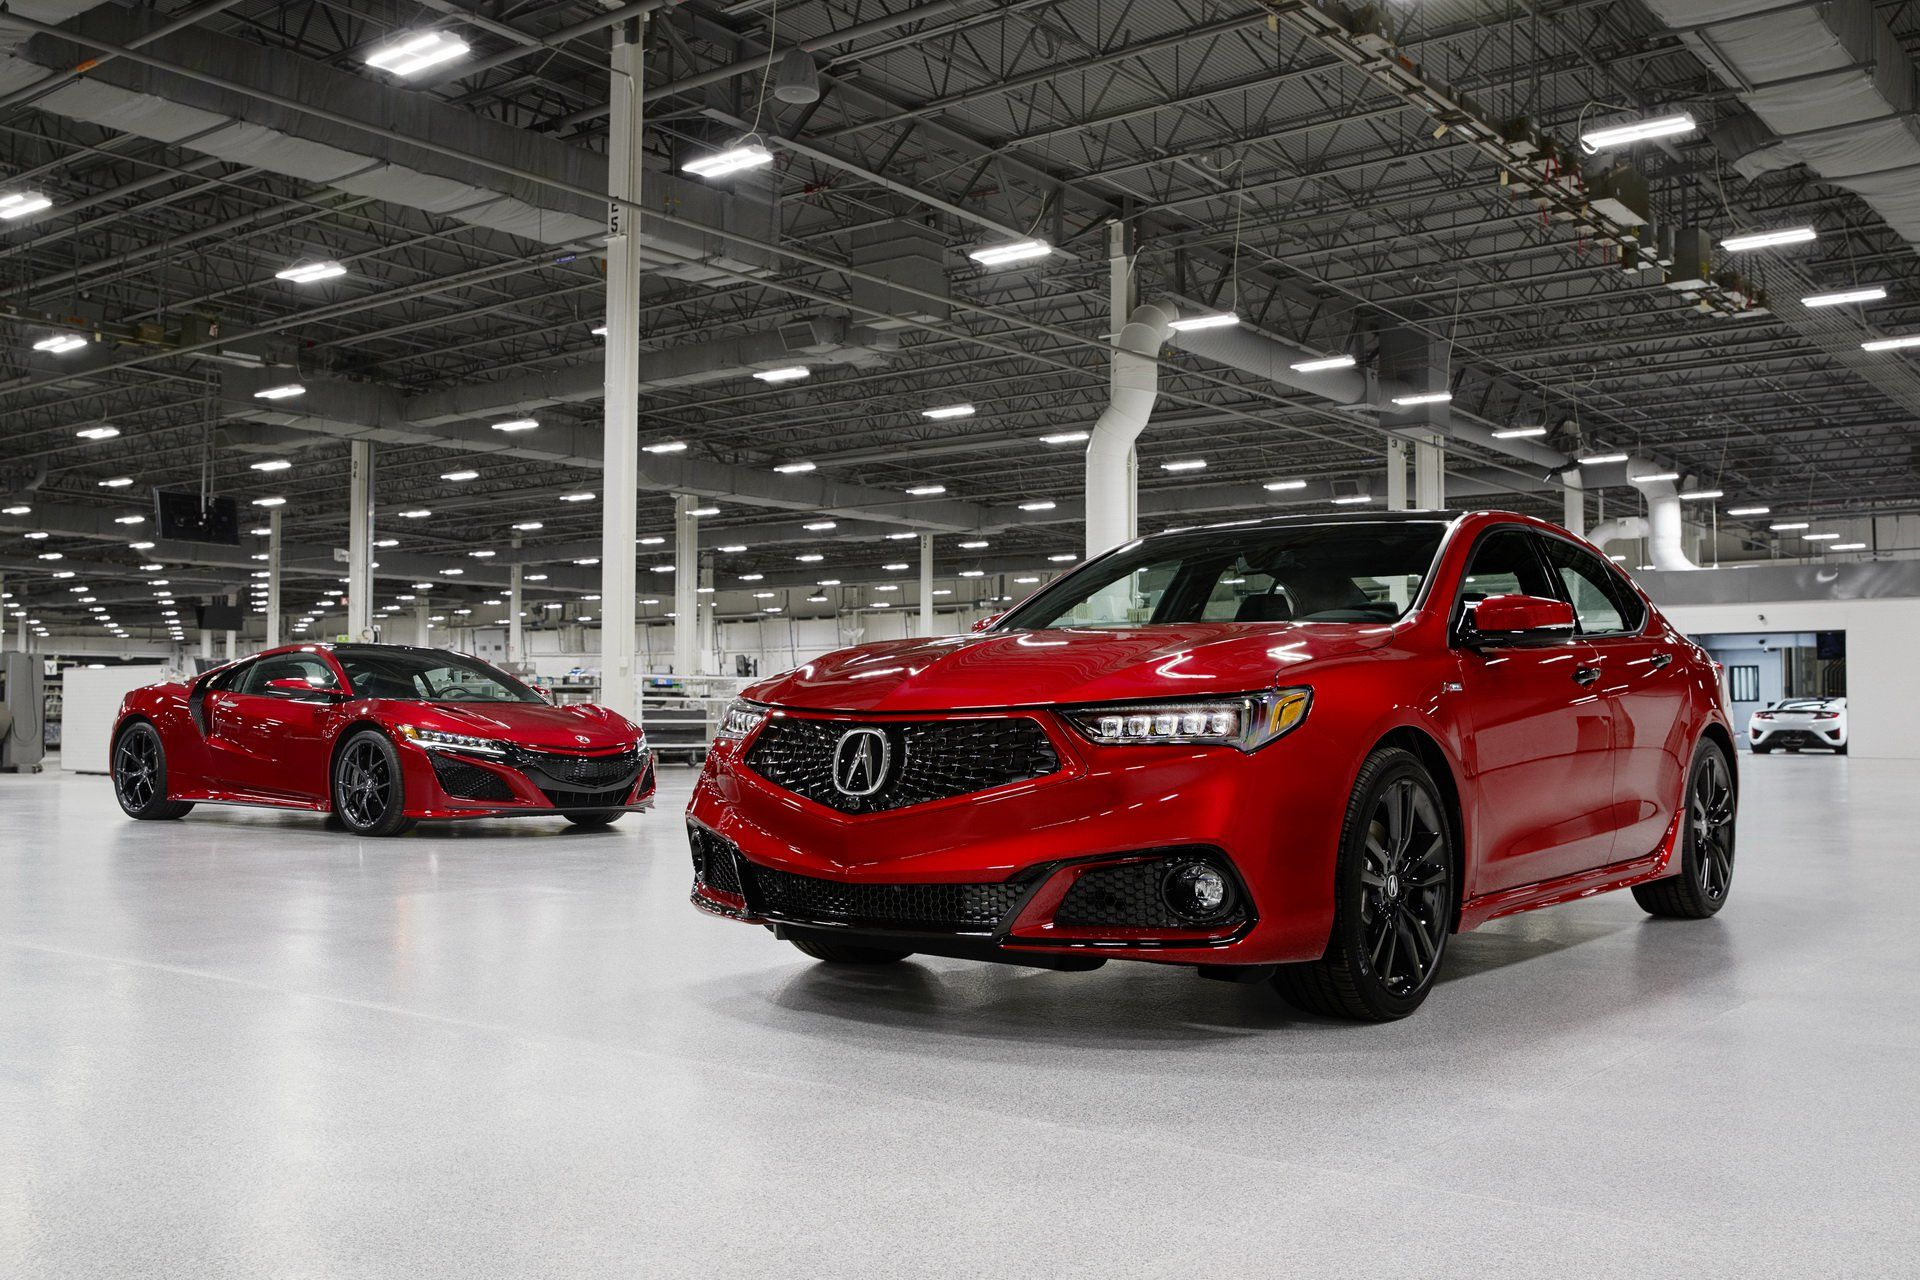 2020 Acura Tlx Pmc Edition Is A 50 000 Special Handcrafted By Nsx Master Techs Sports Sedan Nsx Audi Sport